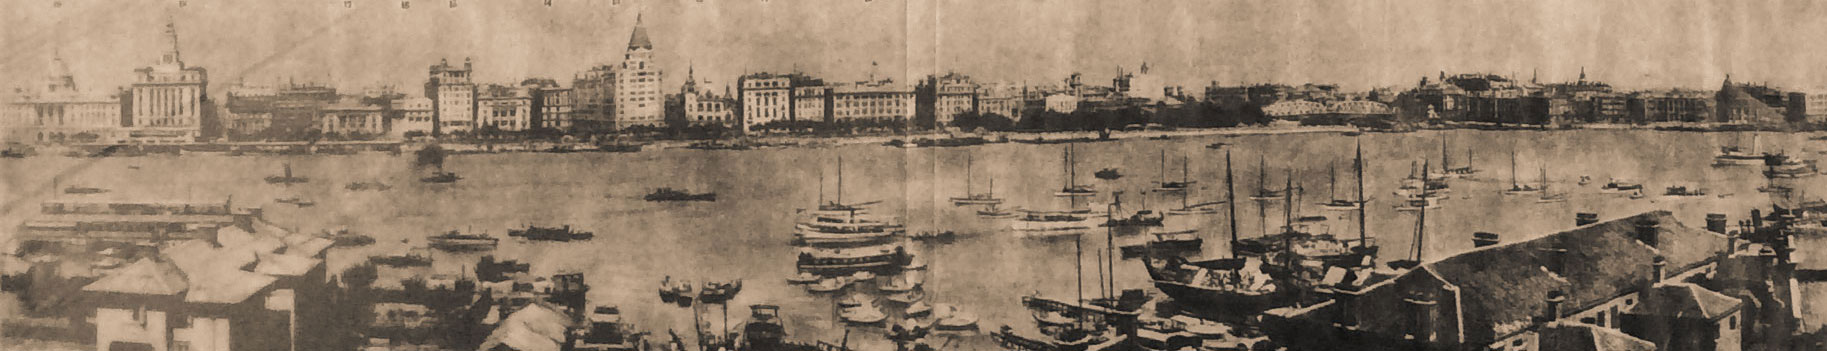 Image of the Bund